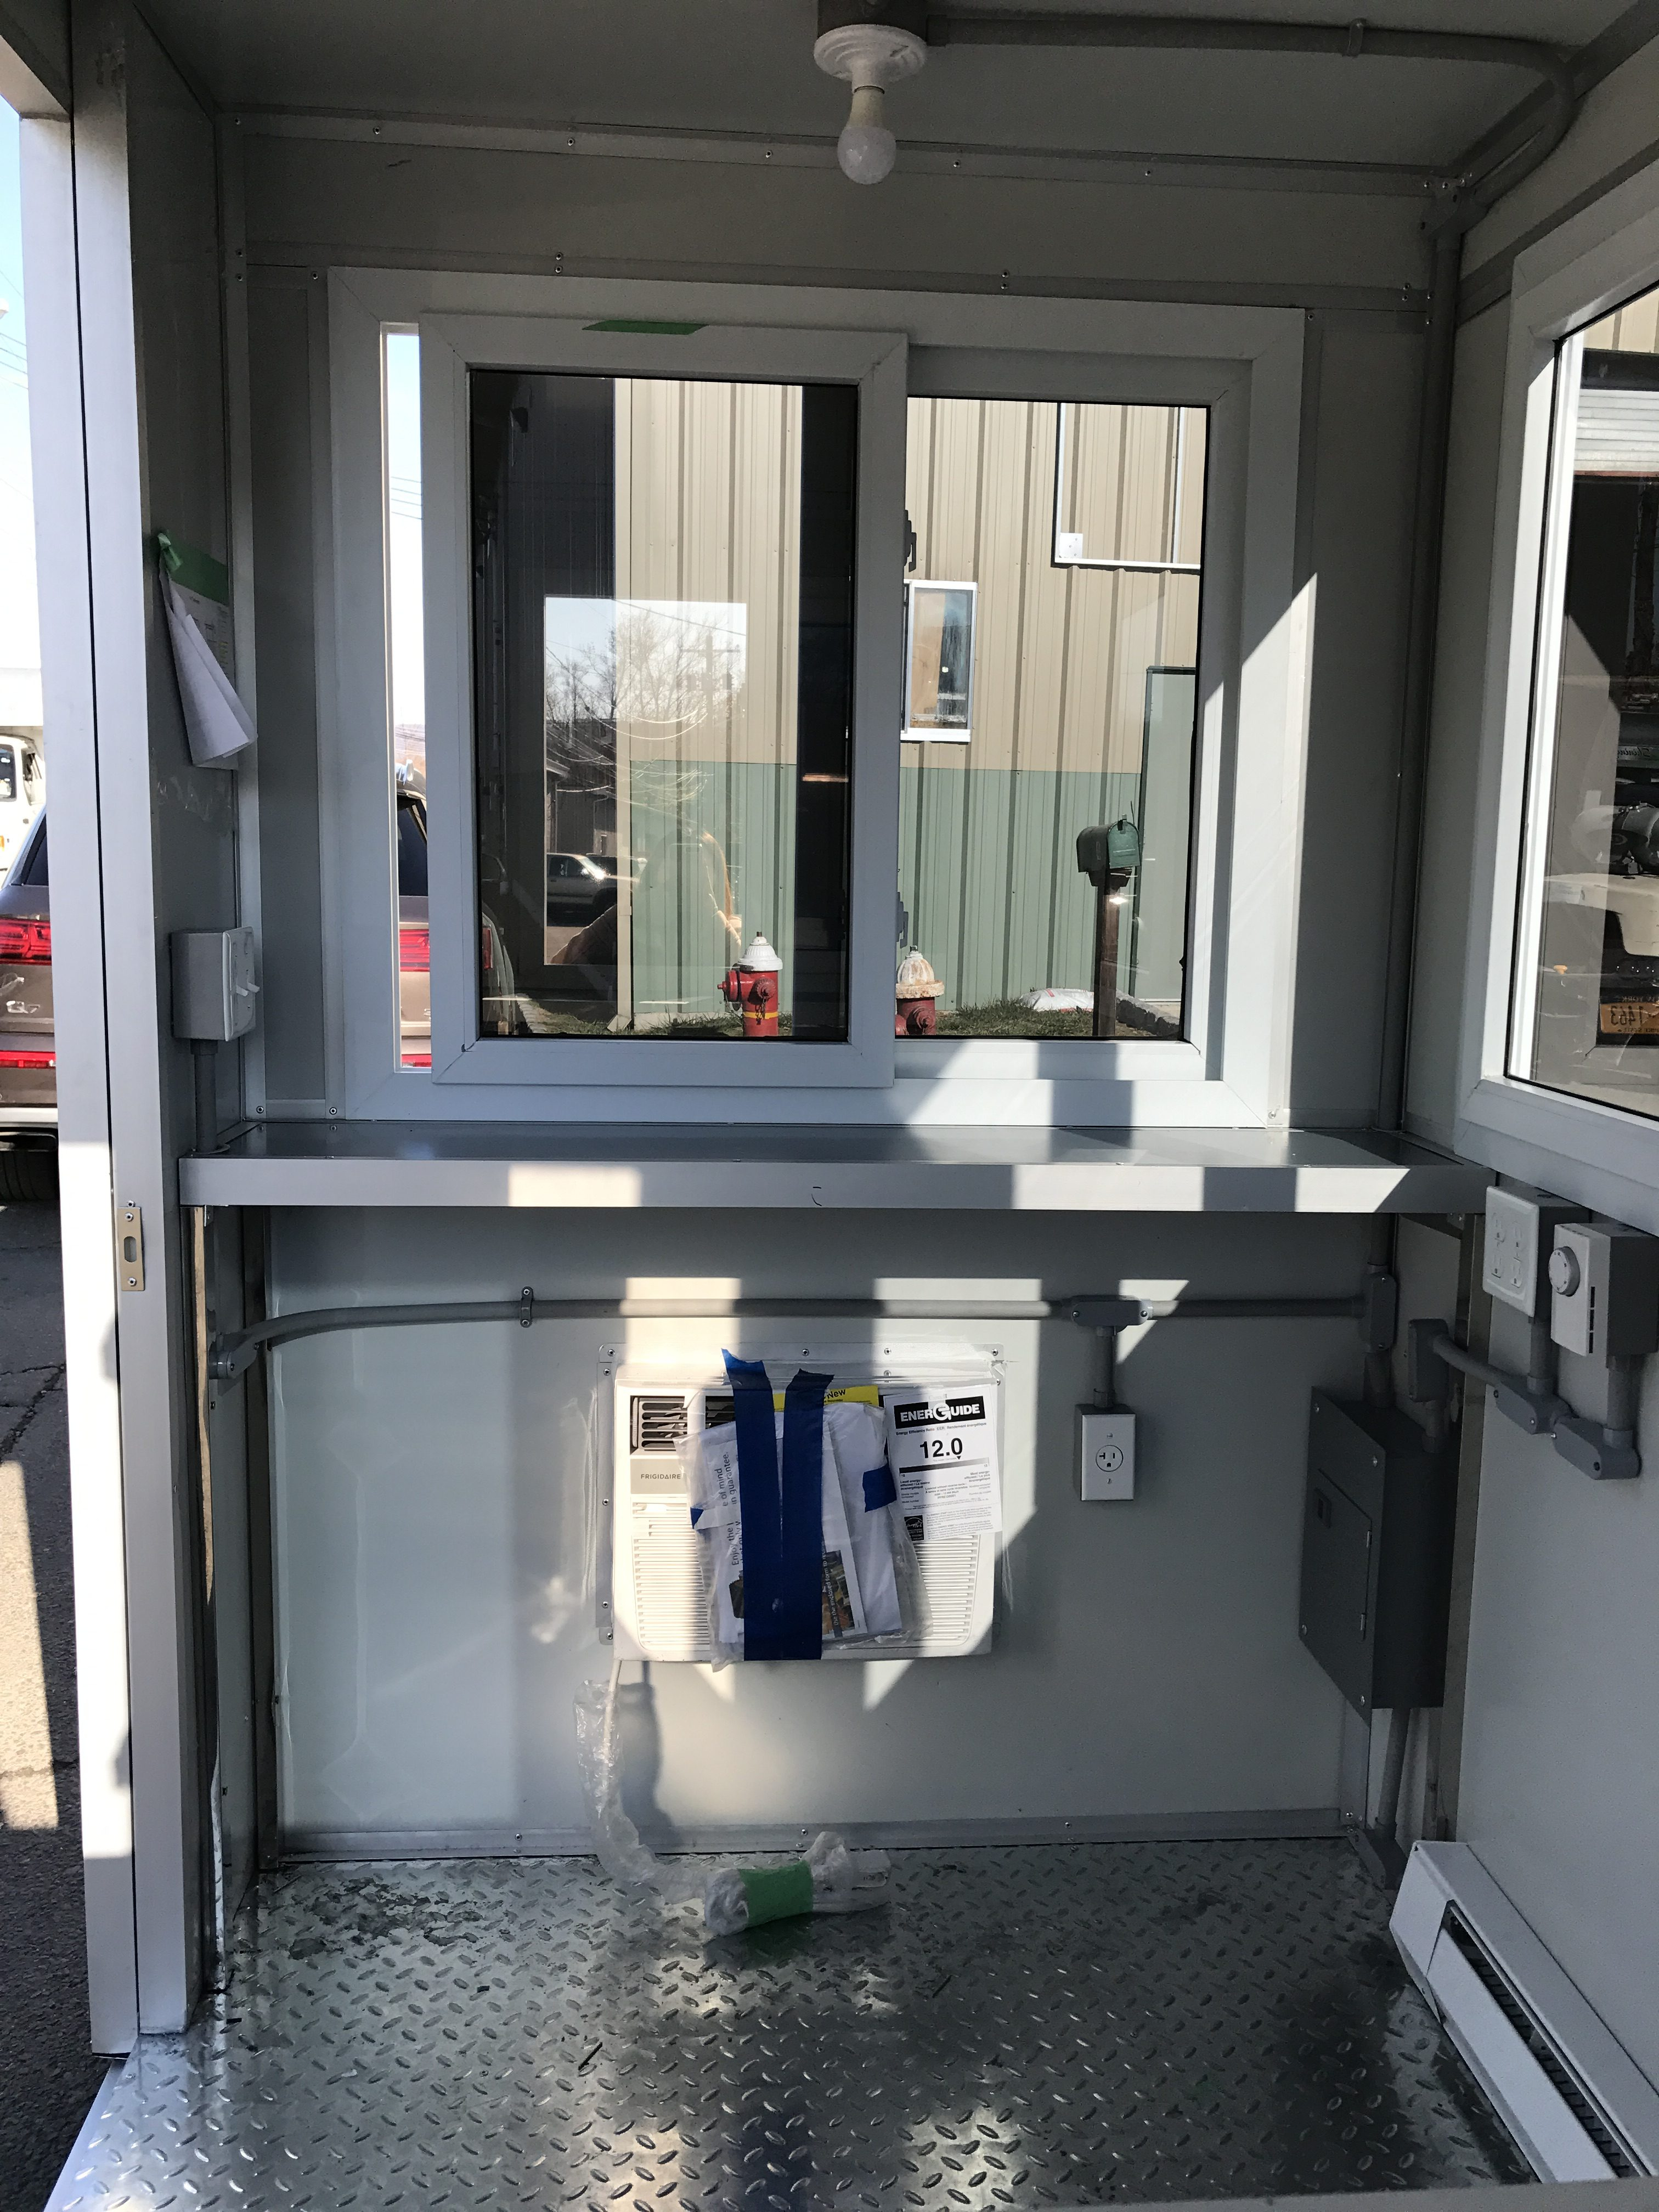 5x7 Booth with Add-on Features Breaker Panel Box, Built-in AC, and Baseboard Heaters